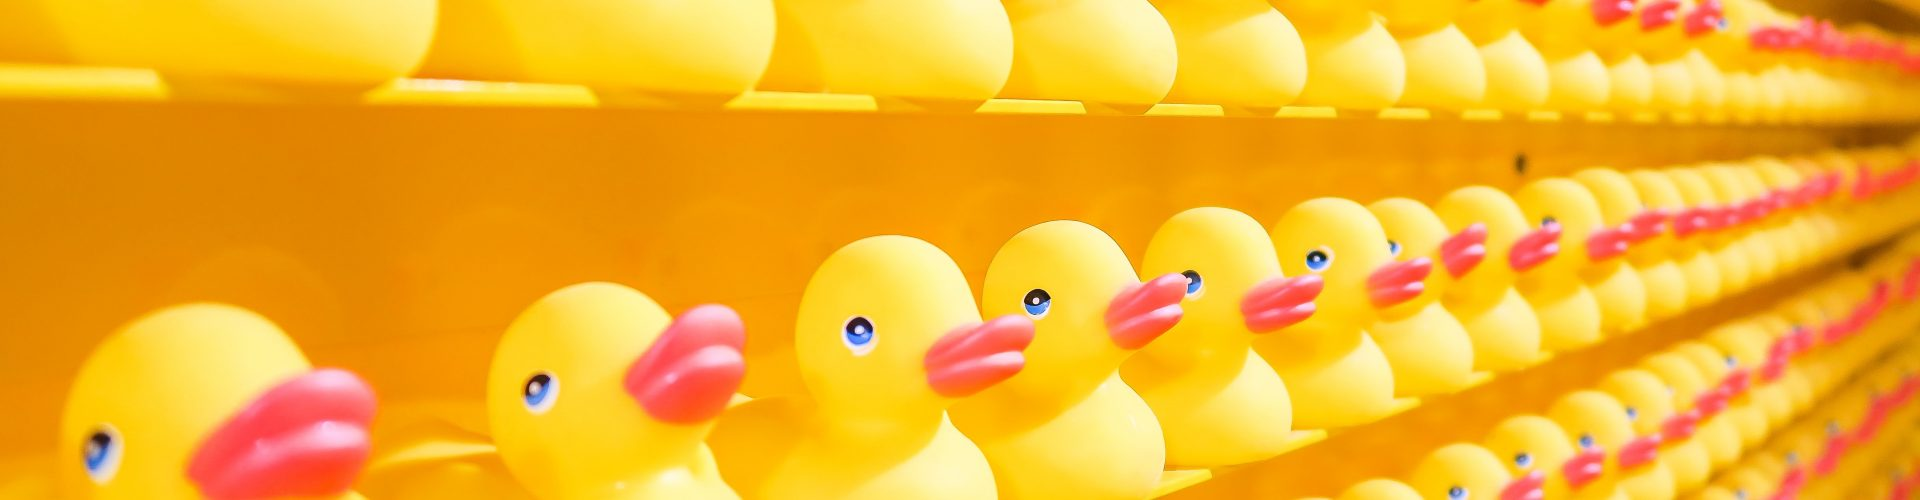 rows of rubber ducks